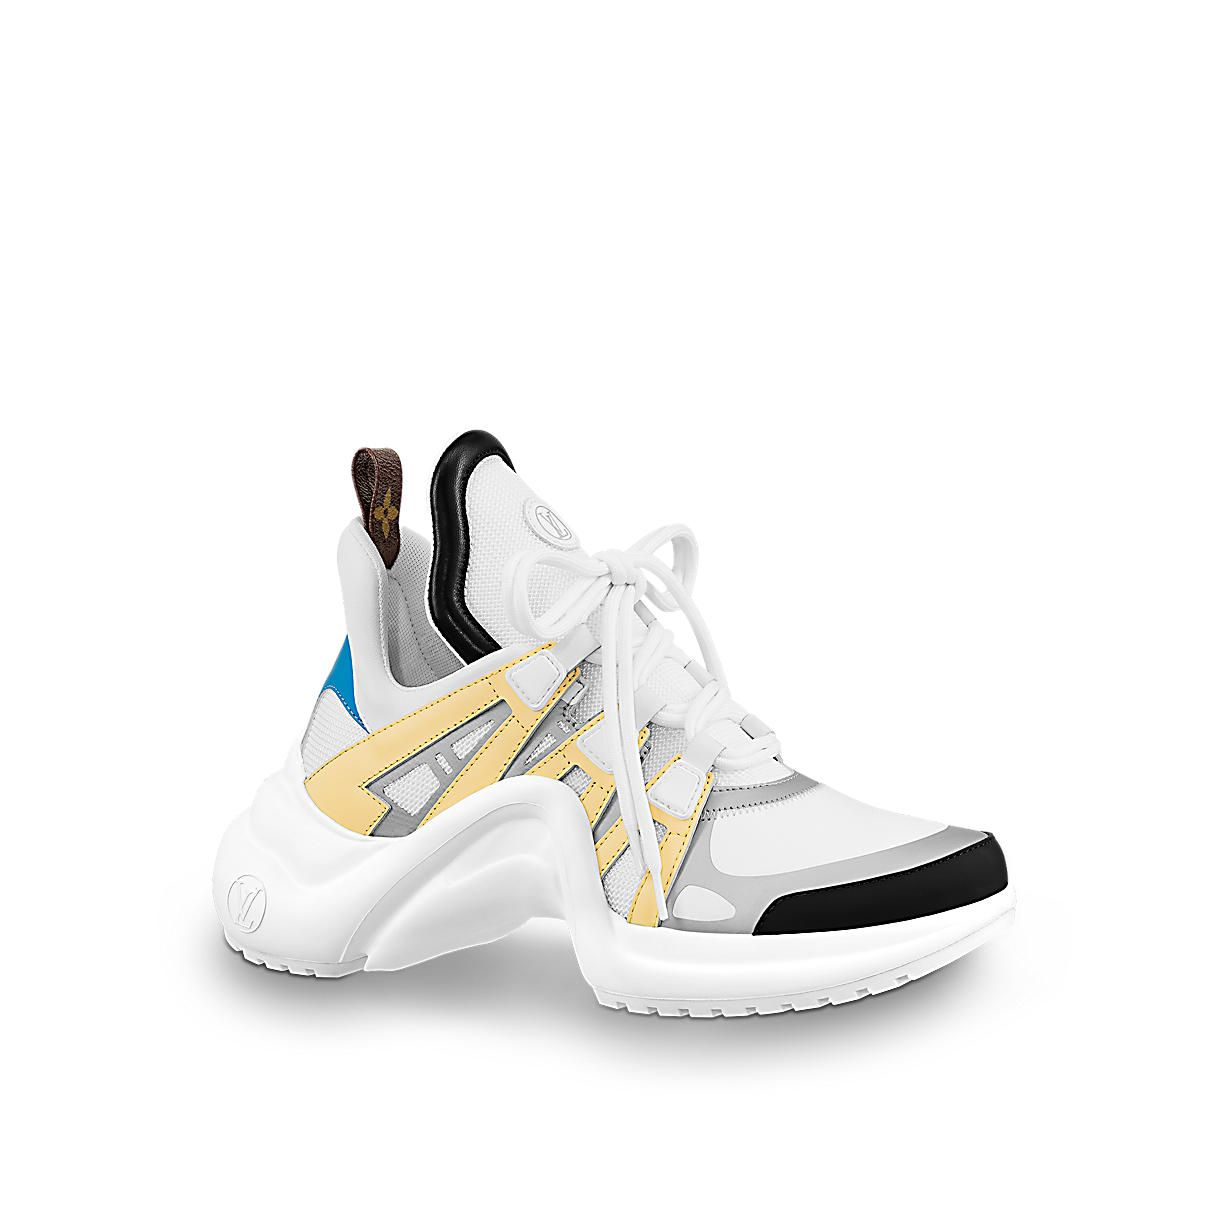 3dd4ab207c2 Women - LV Archlight Sneaker Women Shoes